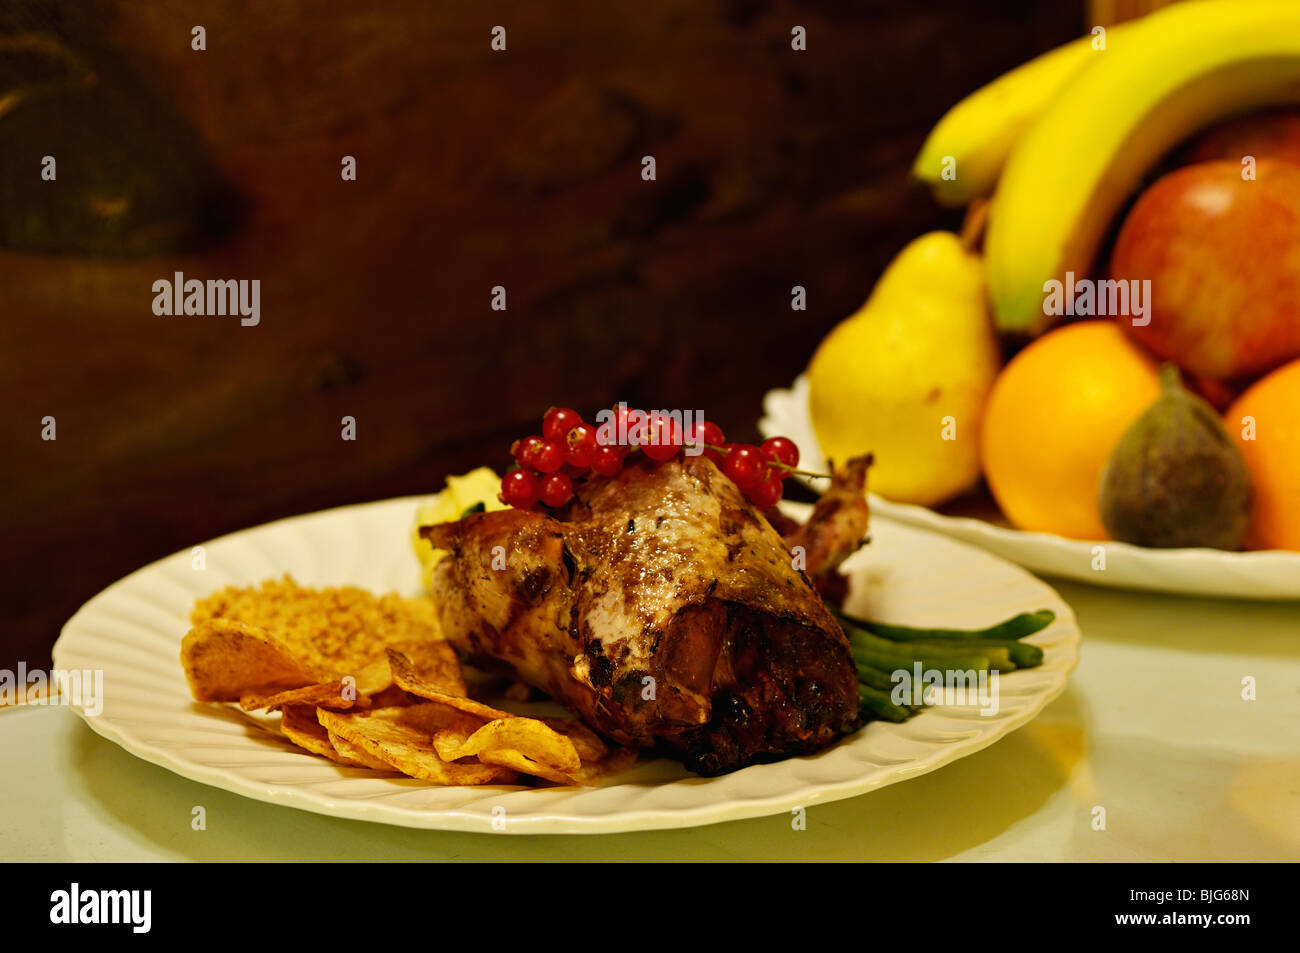 Meal of Red Grouse - Stock Image